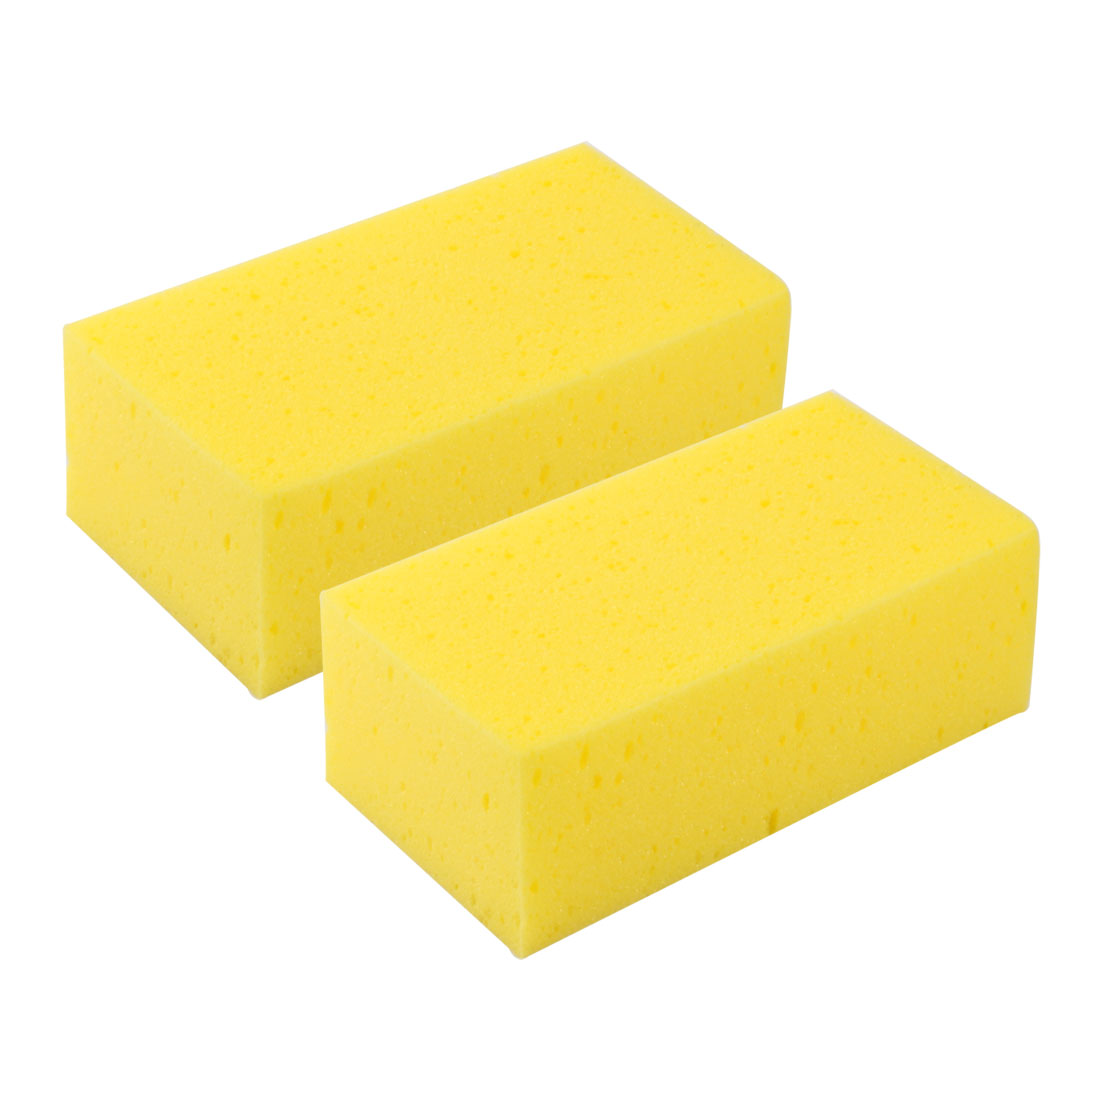 Auto Car Truck Motorcycle Furniture Boat Sponge Cleaner Block Cleaning Tool 2pcs